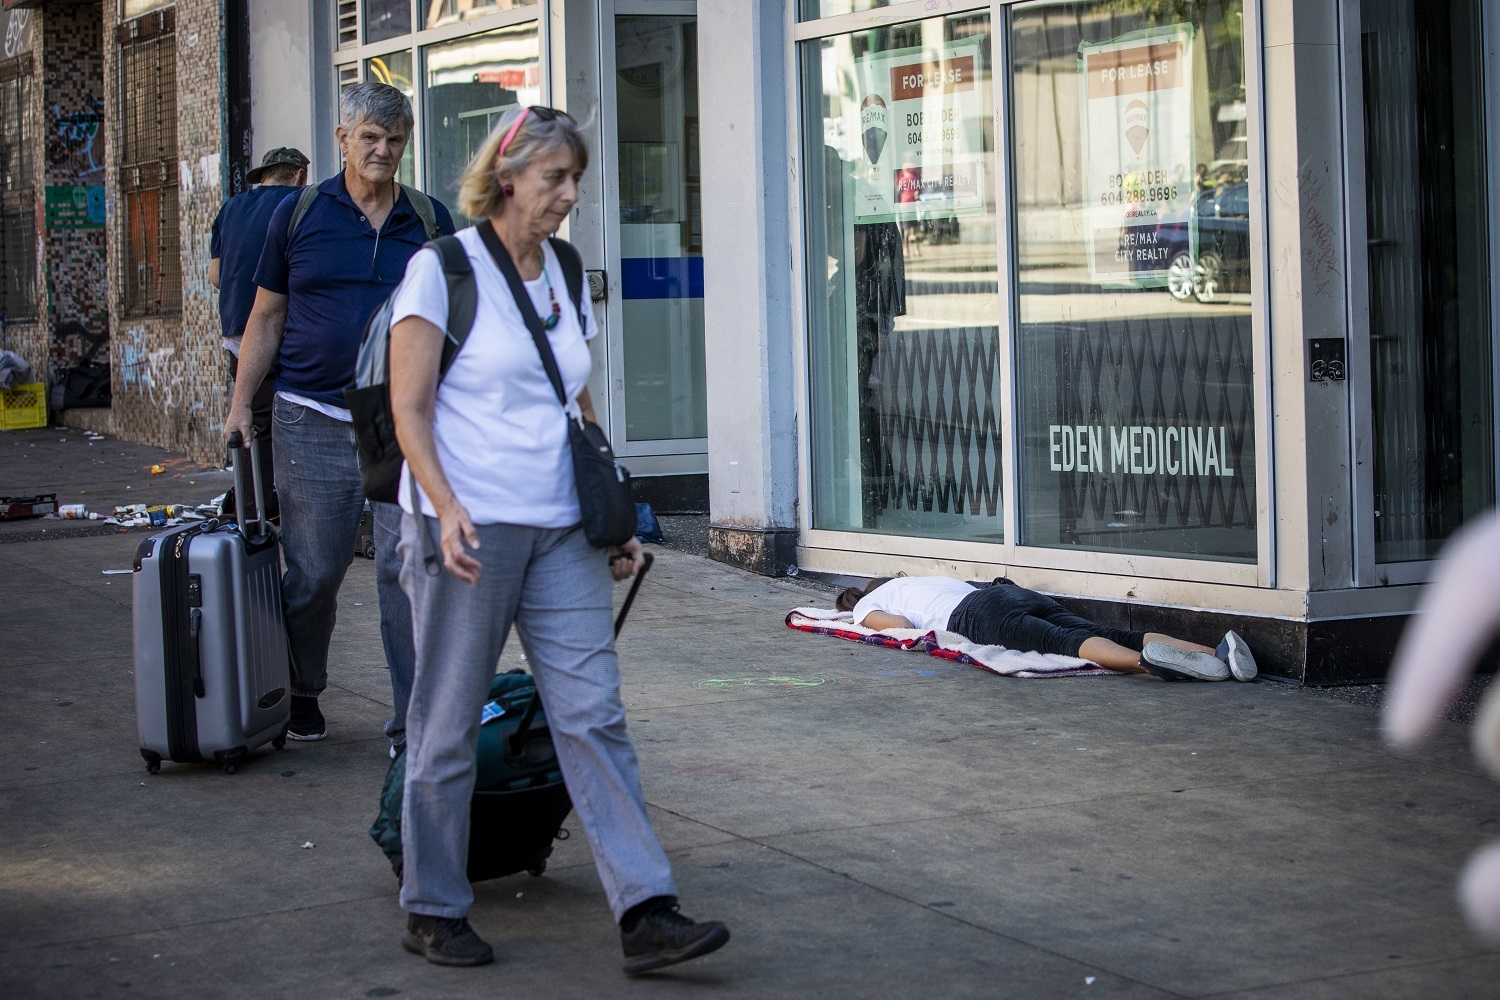 A man and woman walk past a woman lying on the ground along Hastings Street in Vancouver, British Columbia on Friday, September 6, 2019. (Ben Nelms/CBC)